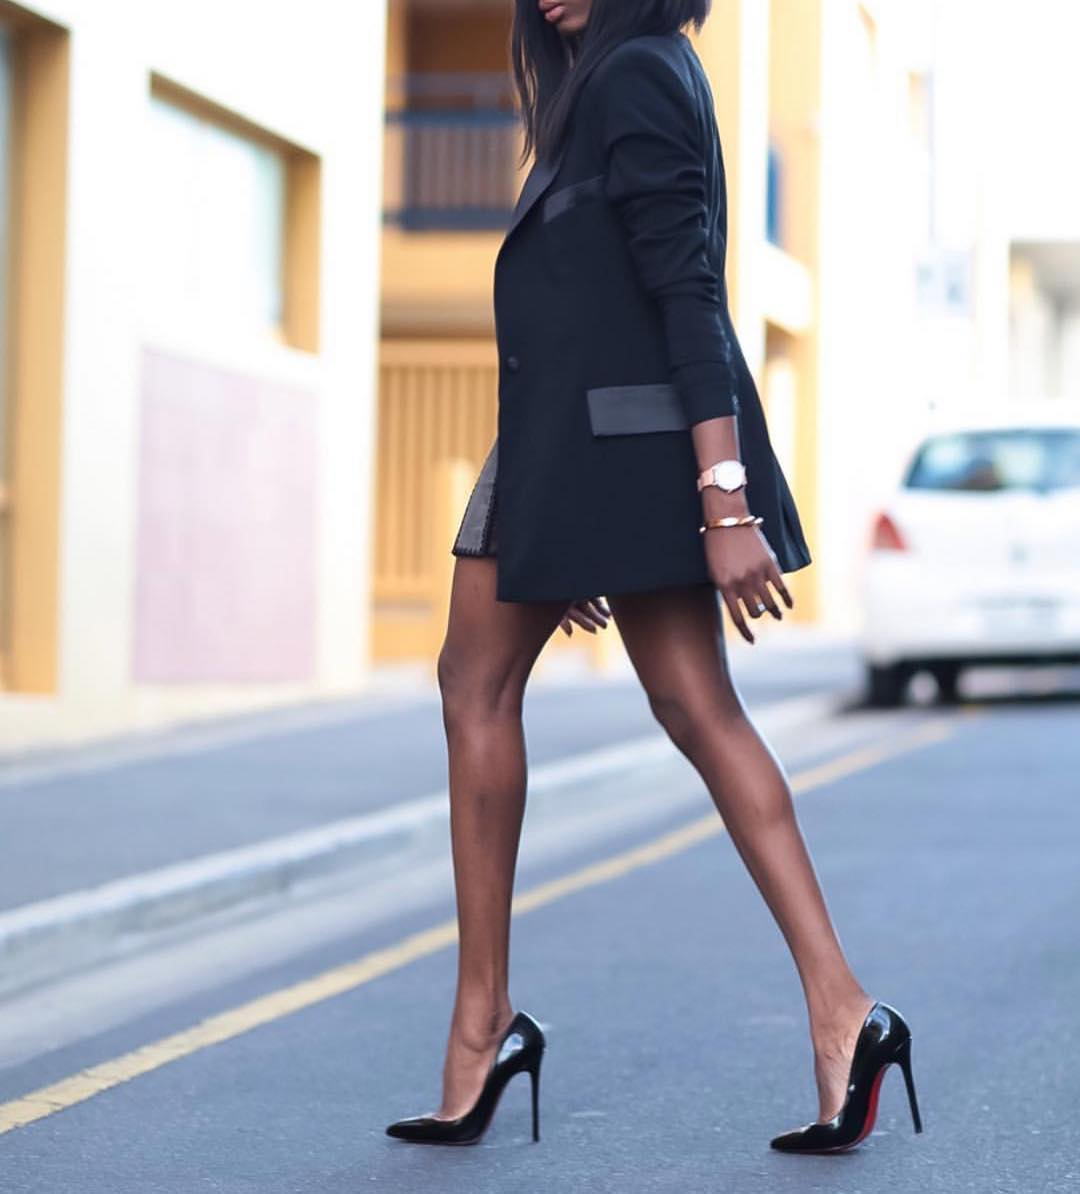 Long Black Blazer And Glossy Black Heeled Pumps For Office Style Chics 2019